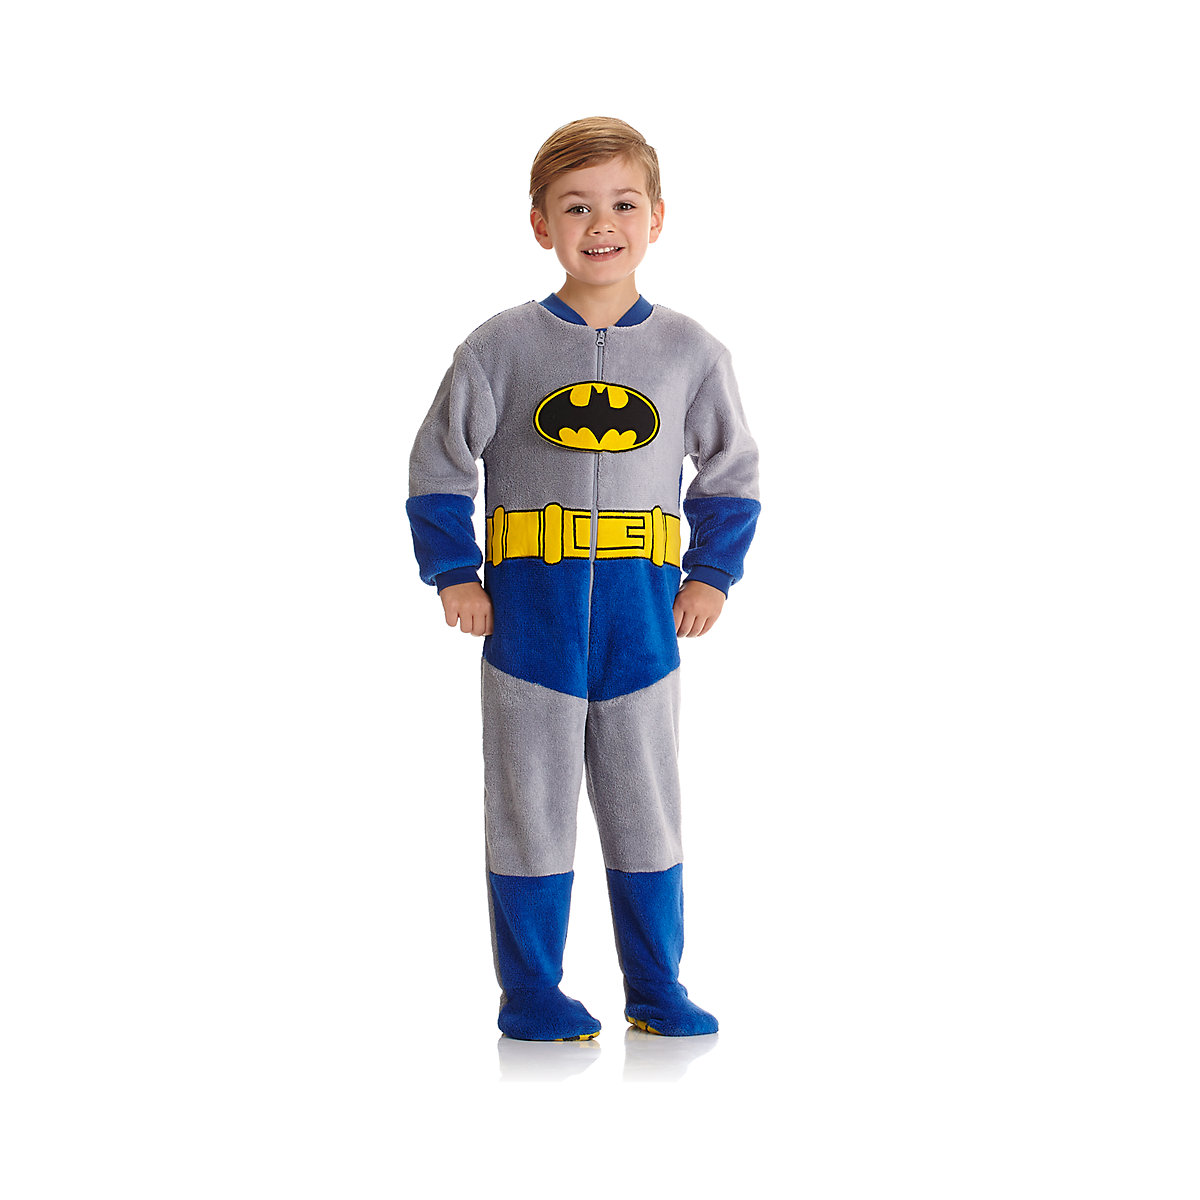 Shop for batman onesie online at Target. Free shipping on purchases over $35 and save 5% every day with your Target REDcard.